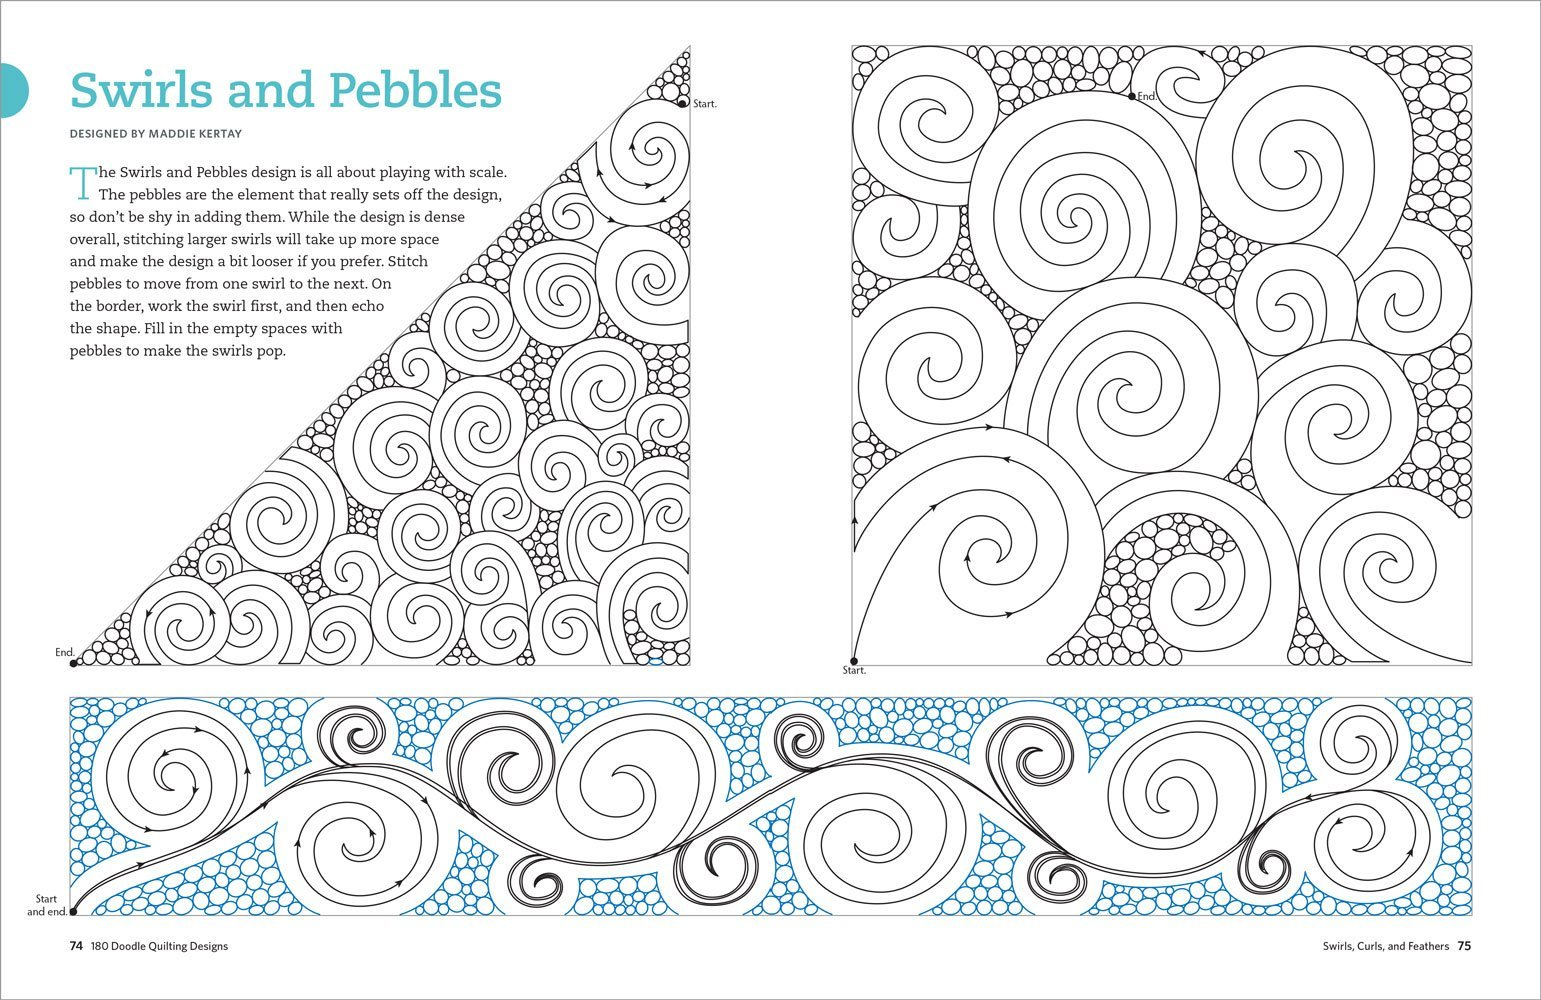 quilting templates for borders - galleon 180 doodle quilting designs free motion ideas